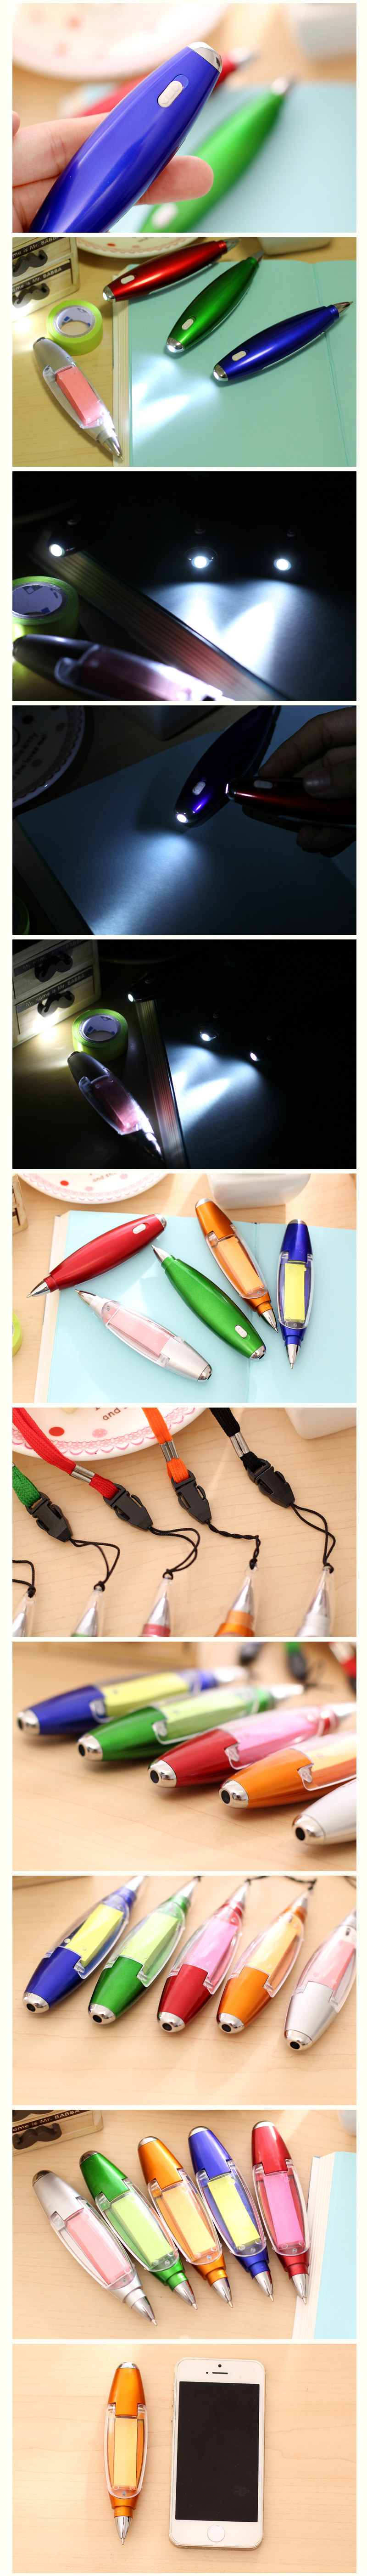 Novelty Pen with Led Light